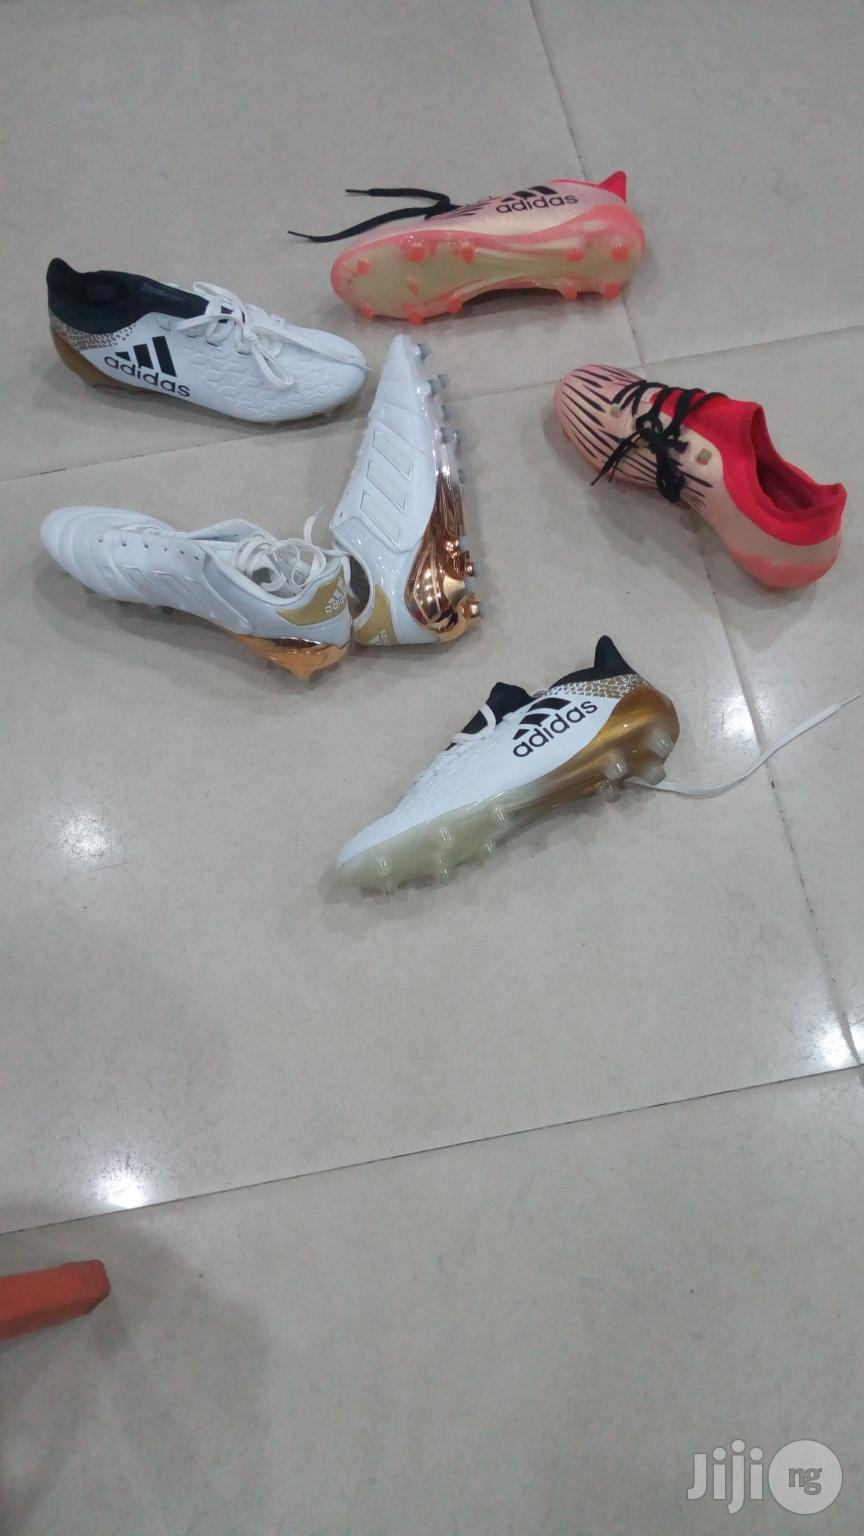 New Latest Adidas Boot   Shoes for sale in Surulere, Lagos State, Nigeria